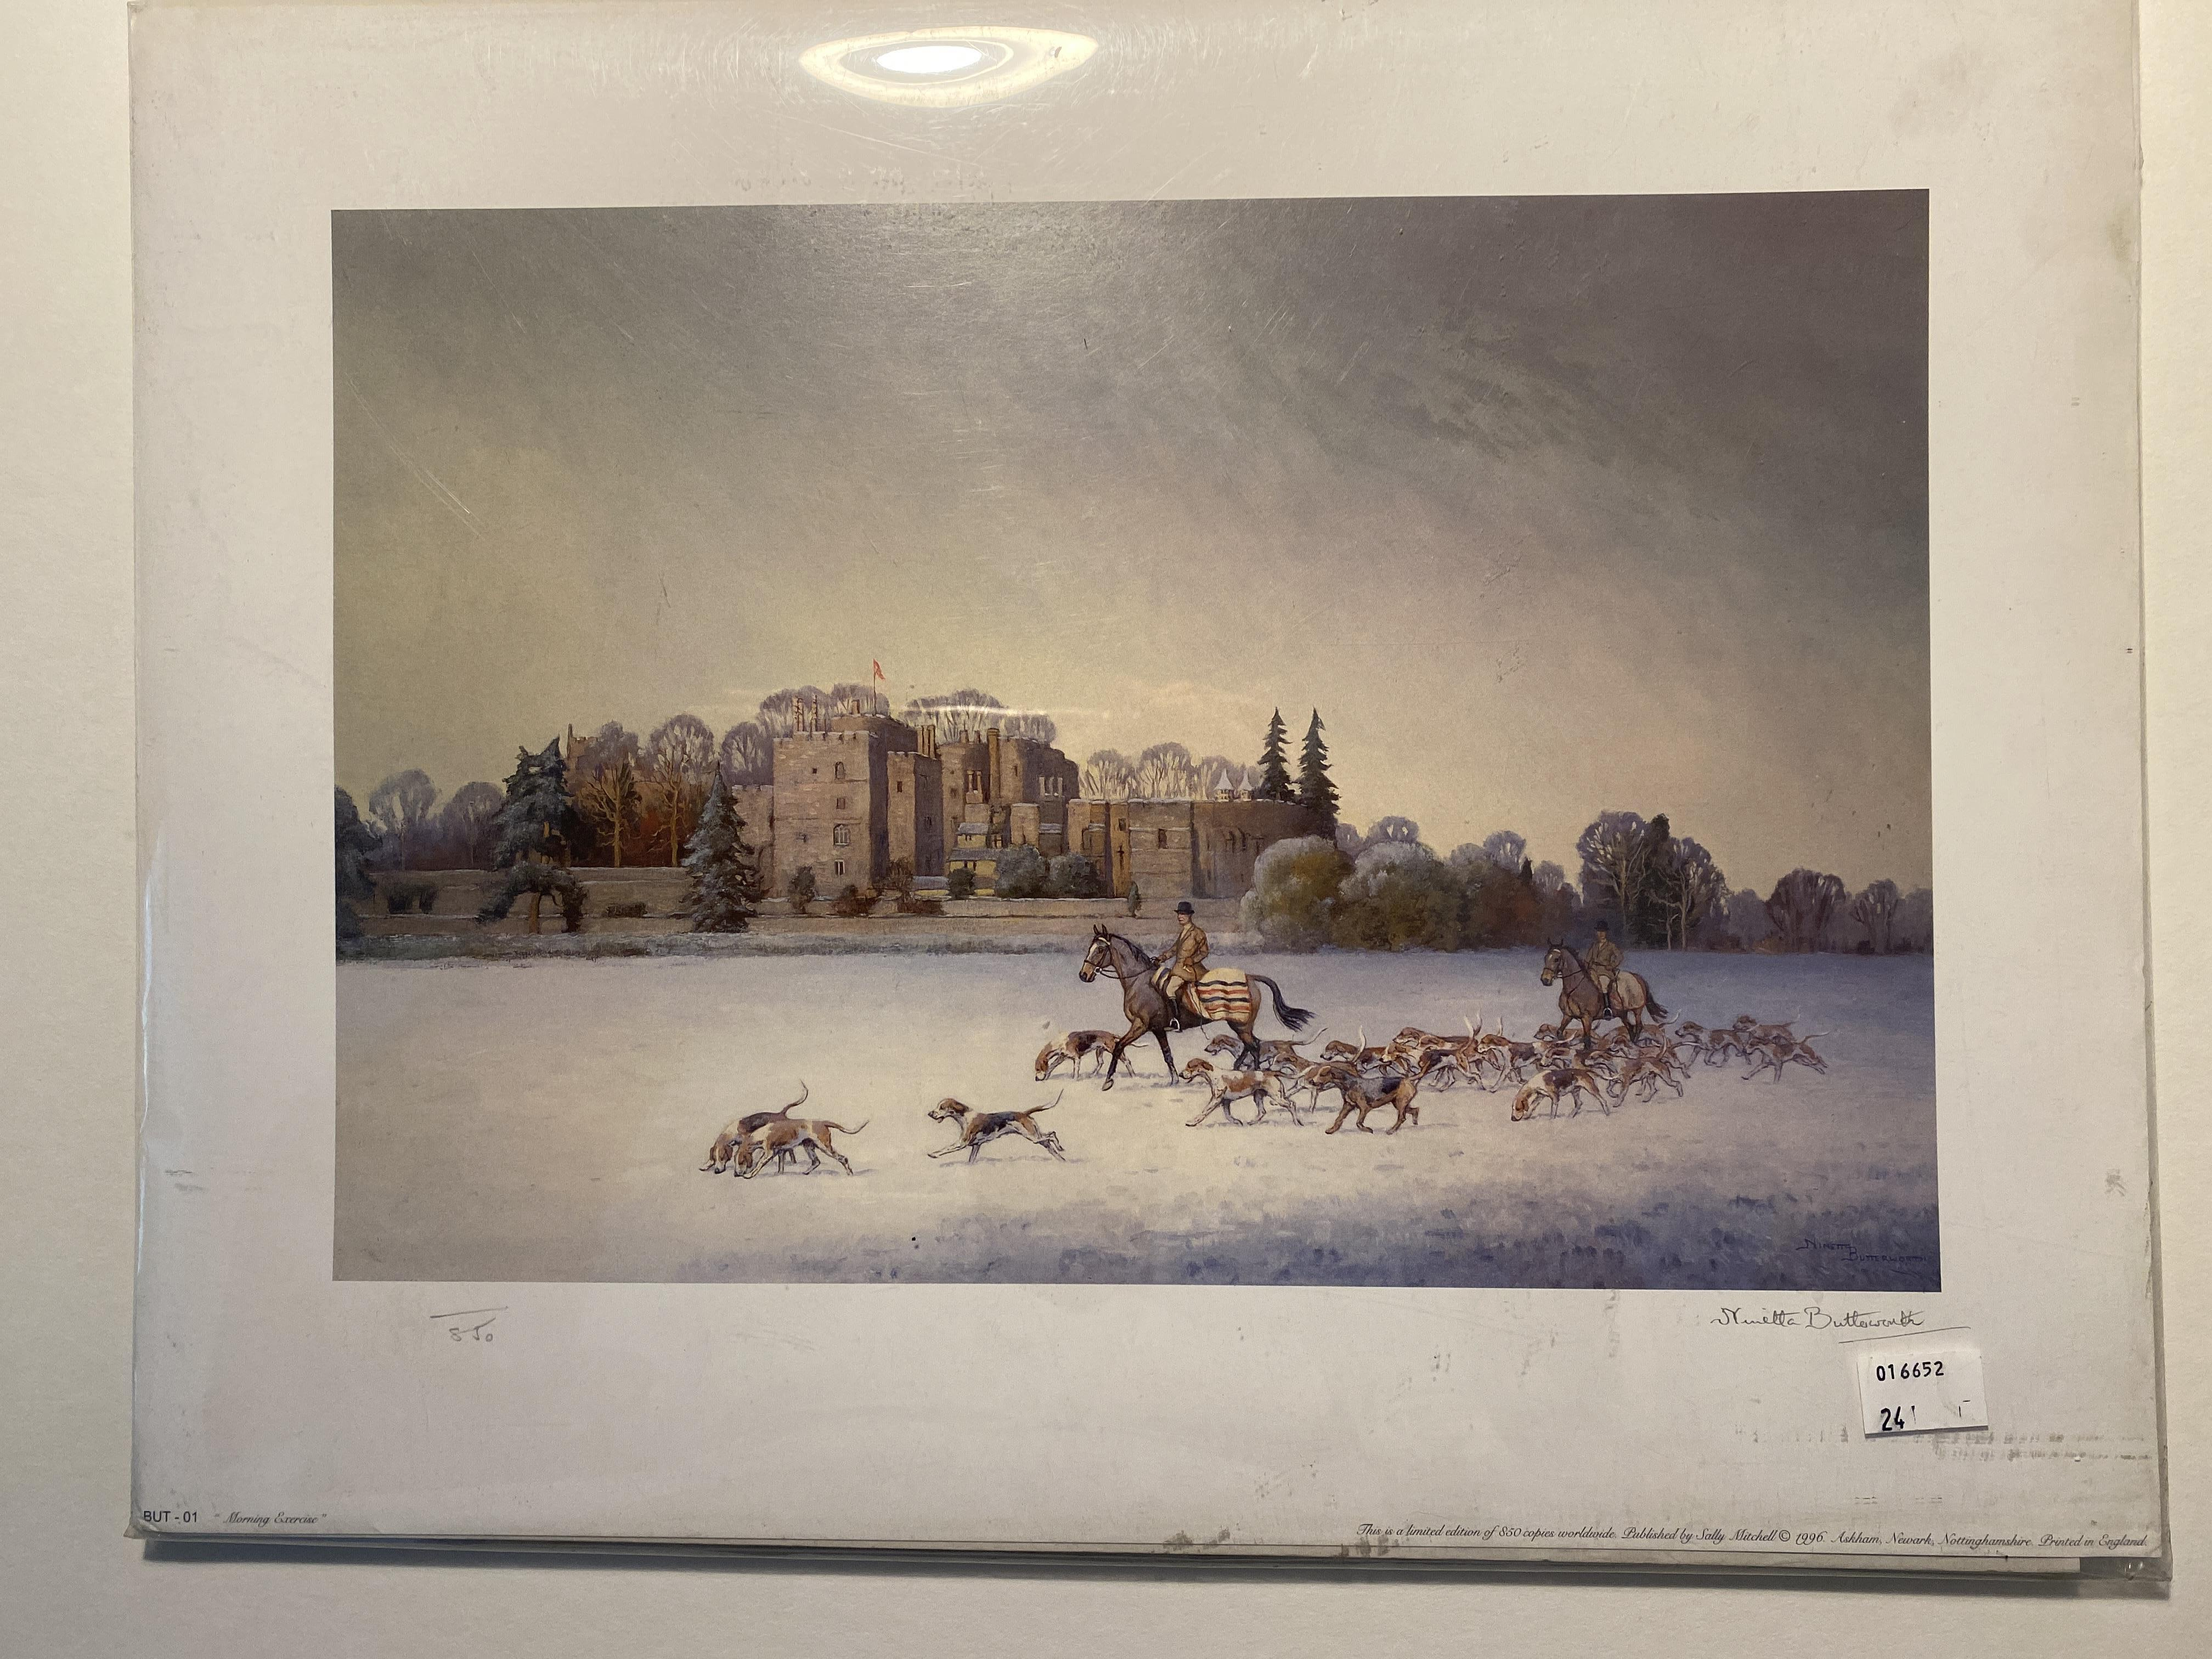 Morning Exercise Limited Edition Print By Ninetta Butterworth